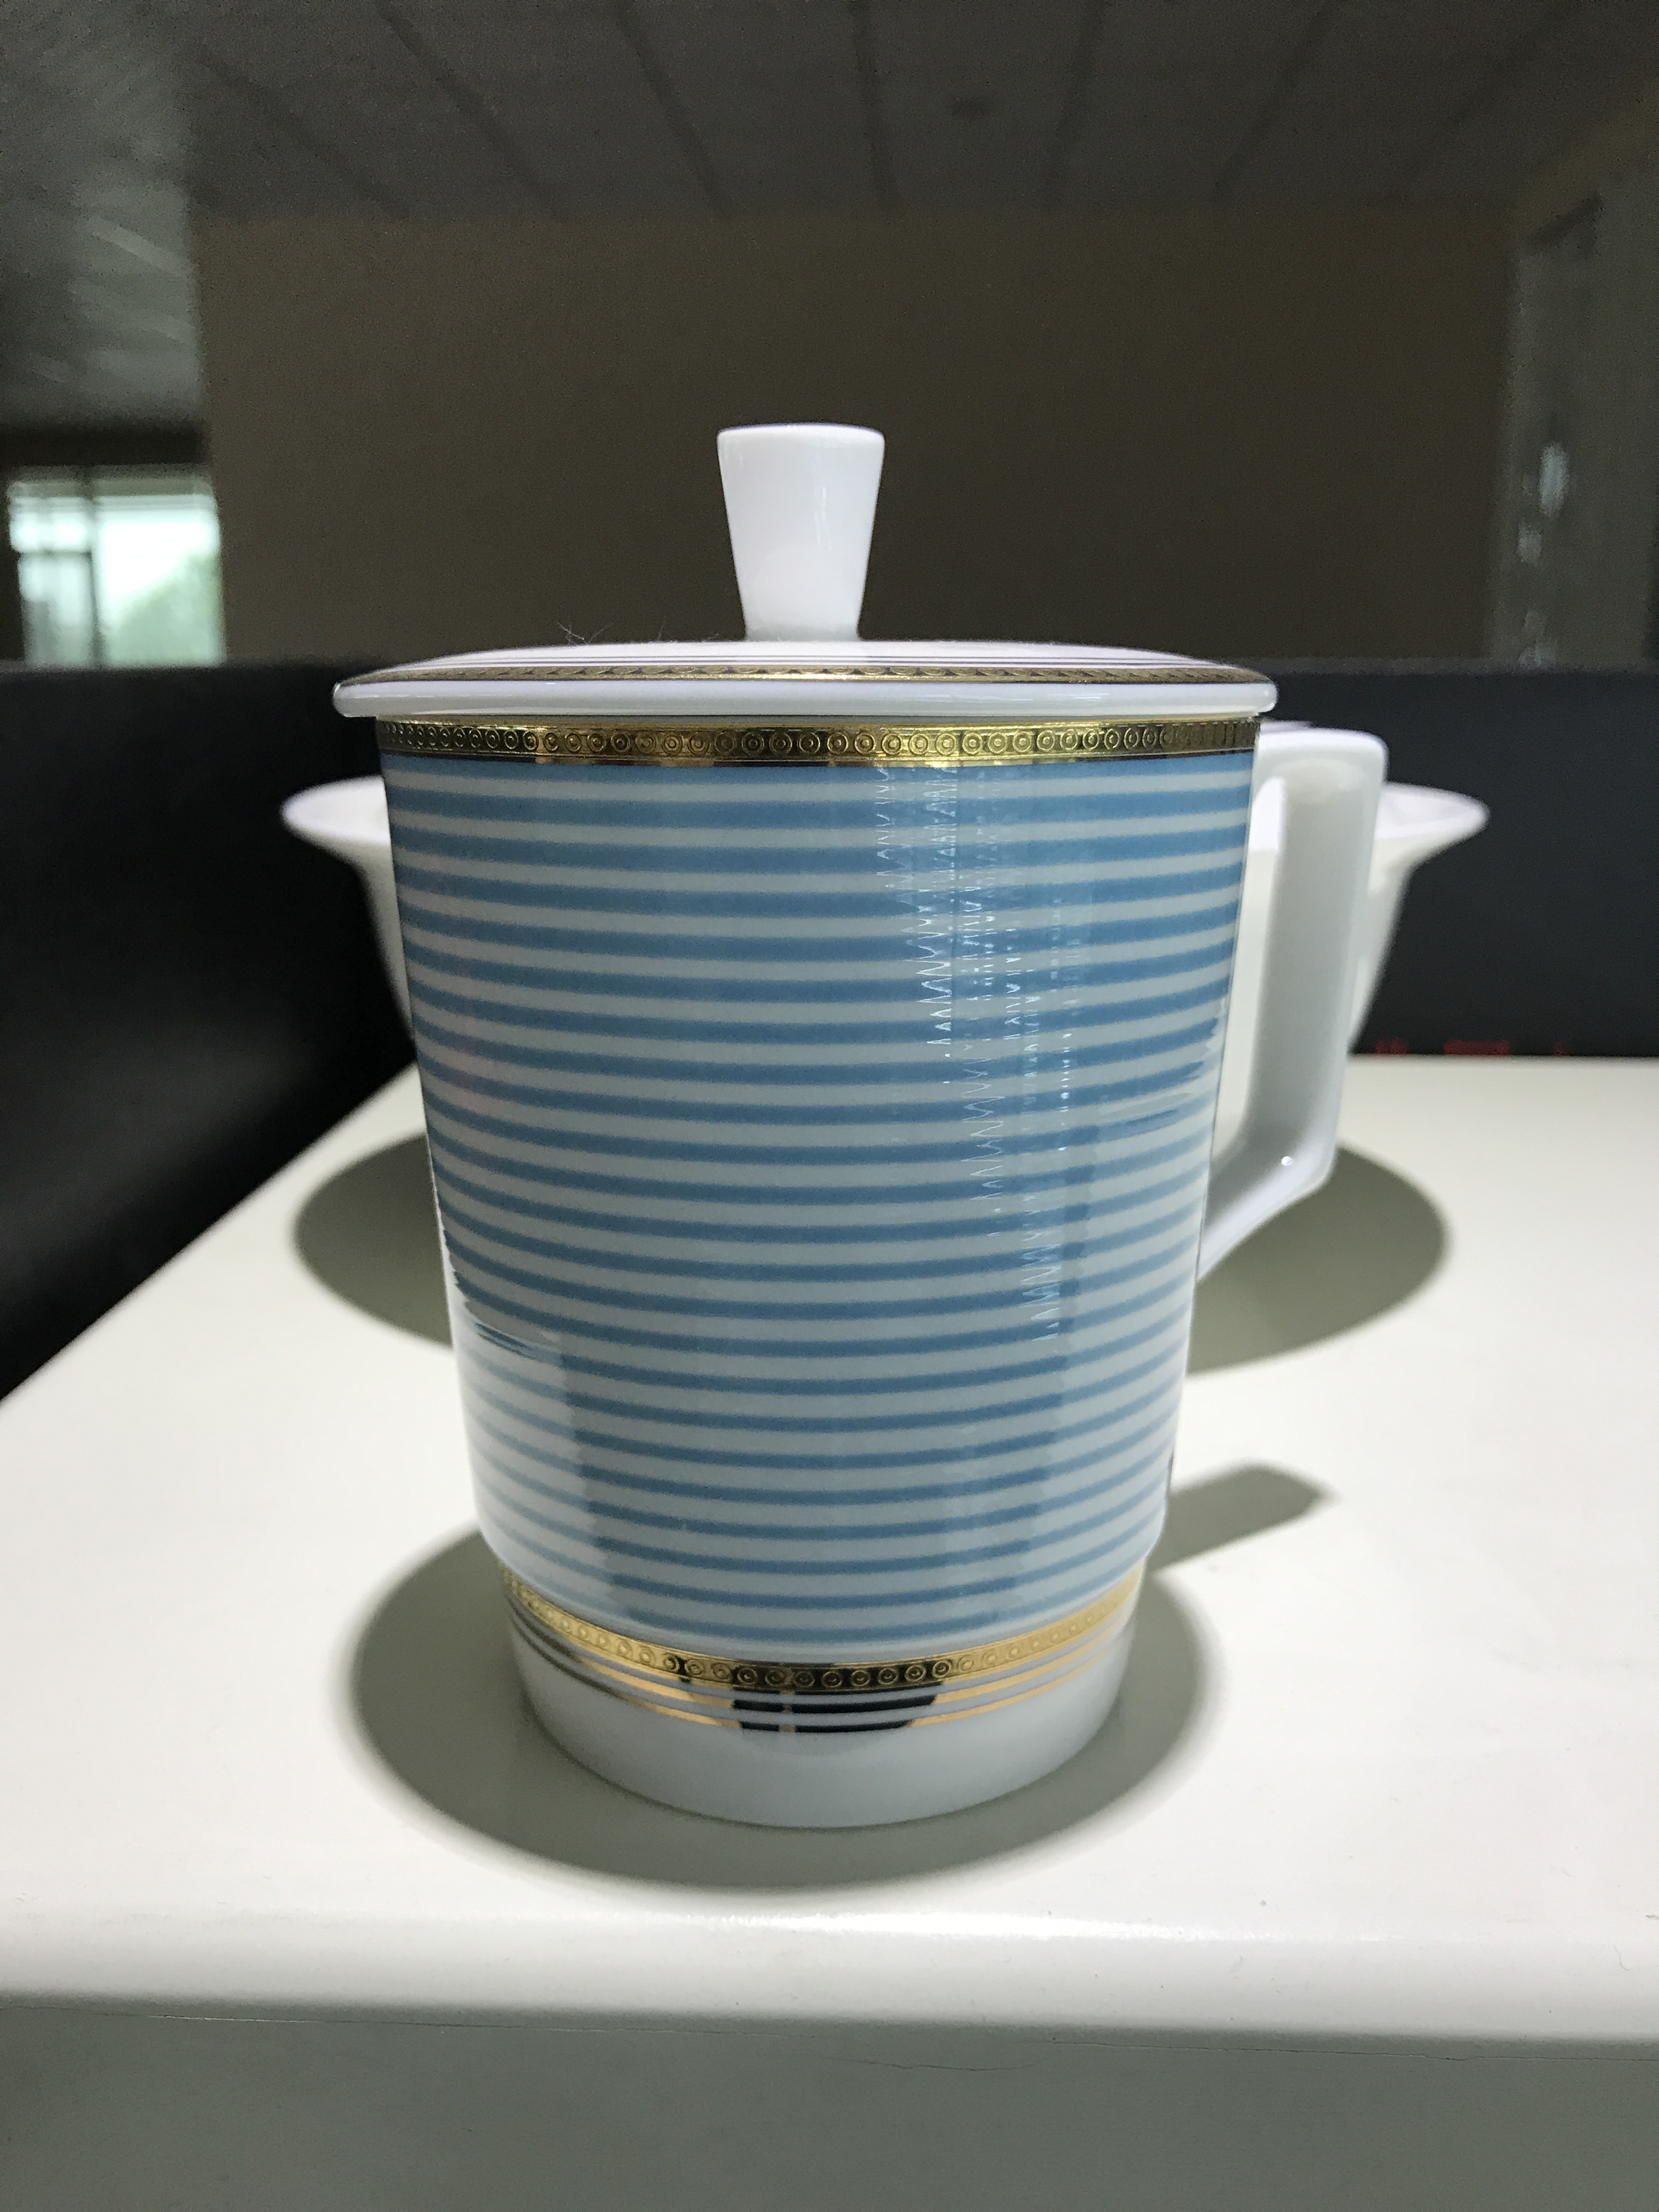 High-grade ceramic roasted coffee cups